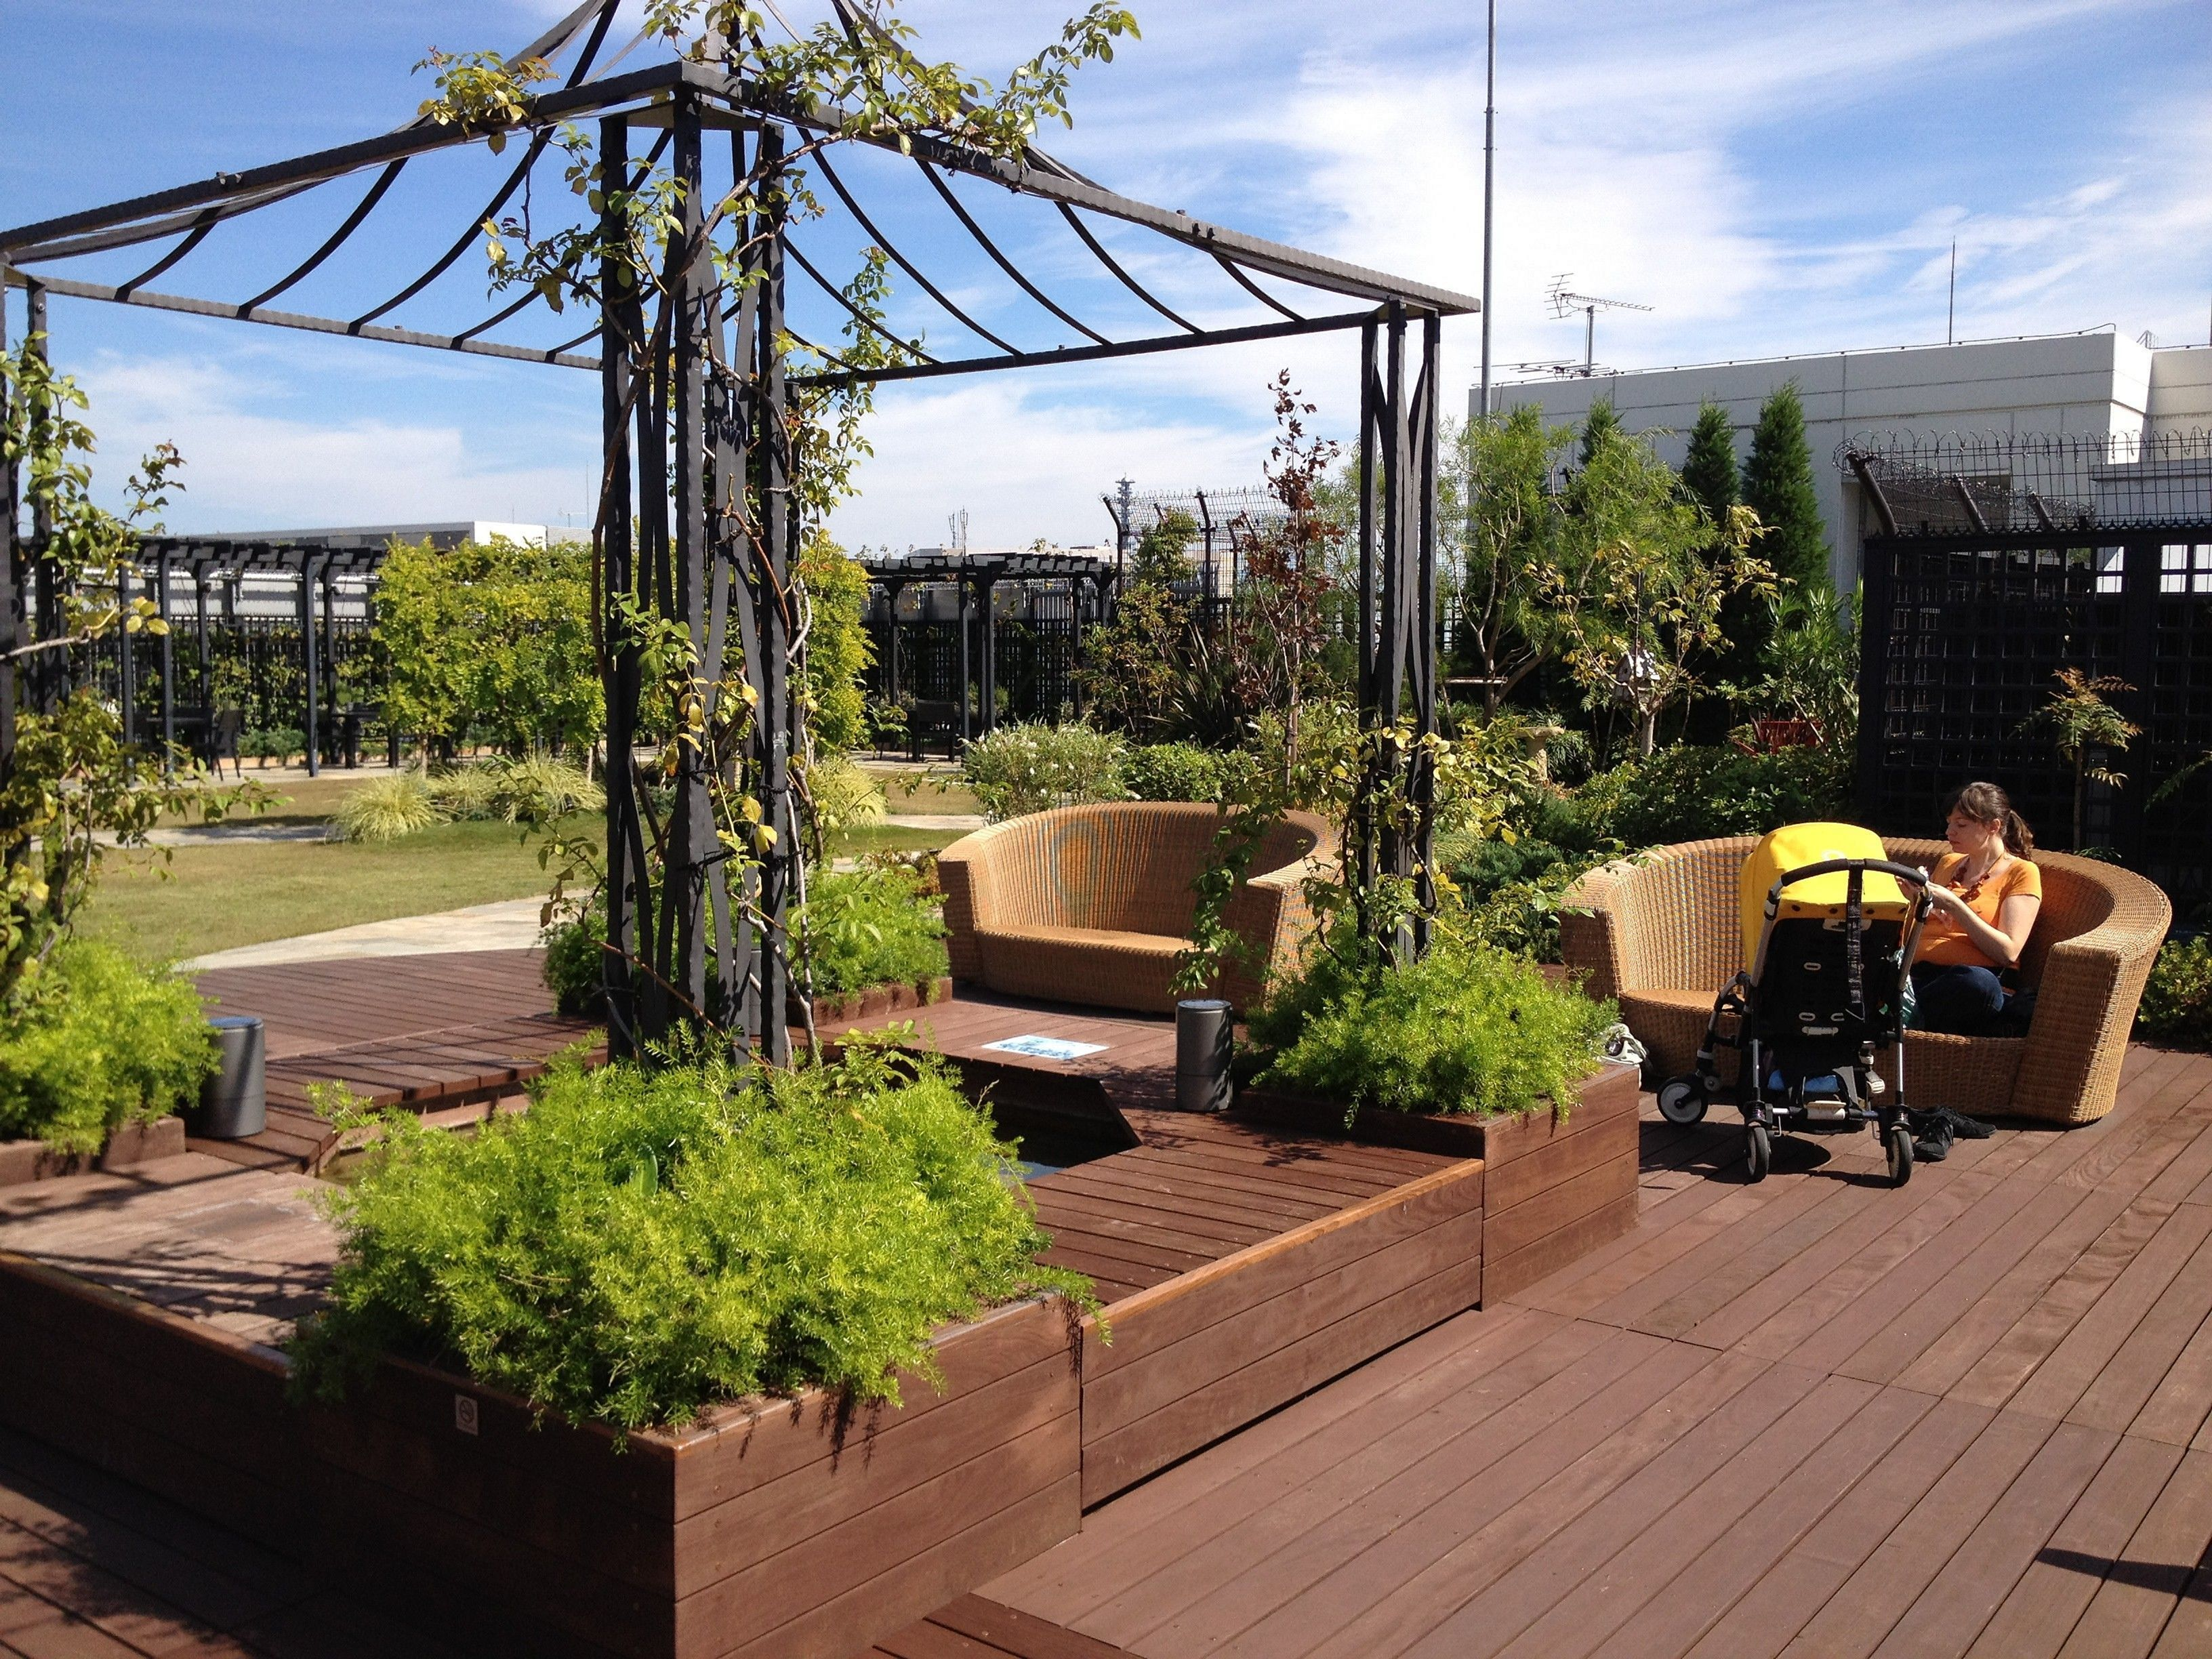 10 Best And Amazing Rooftop Garden Design Ideas To Make Beautiful